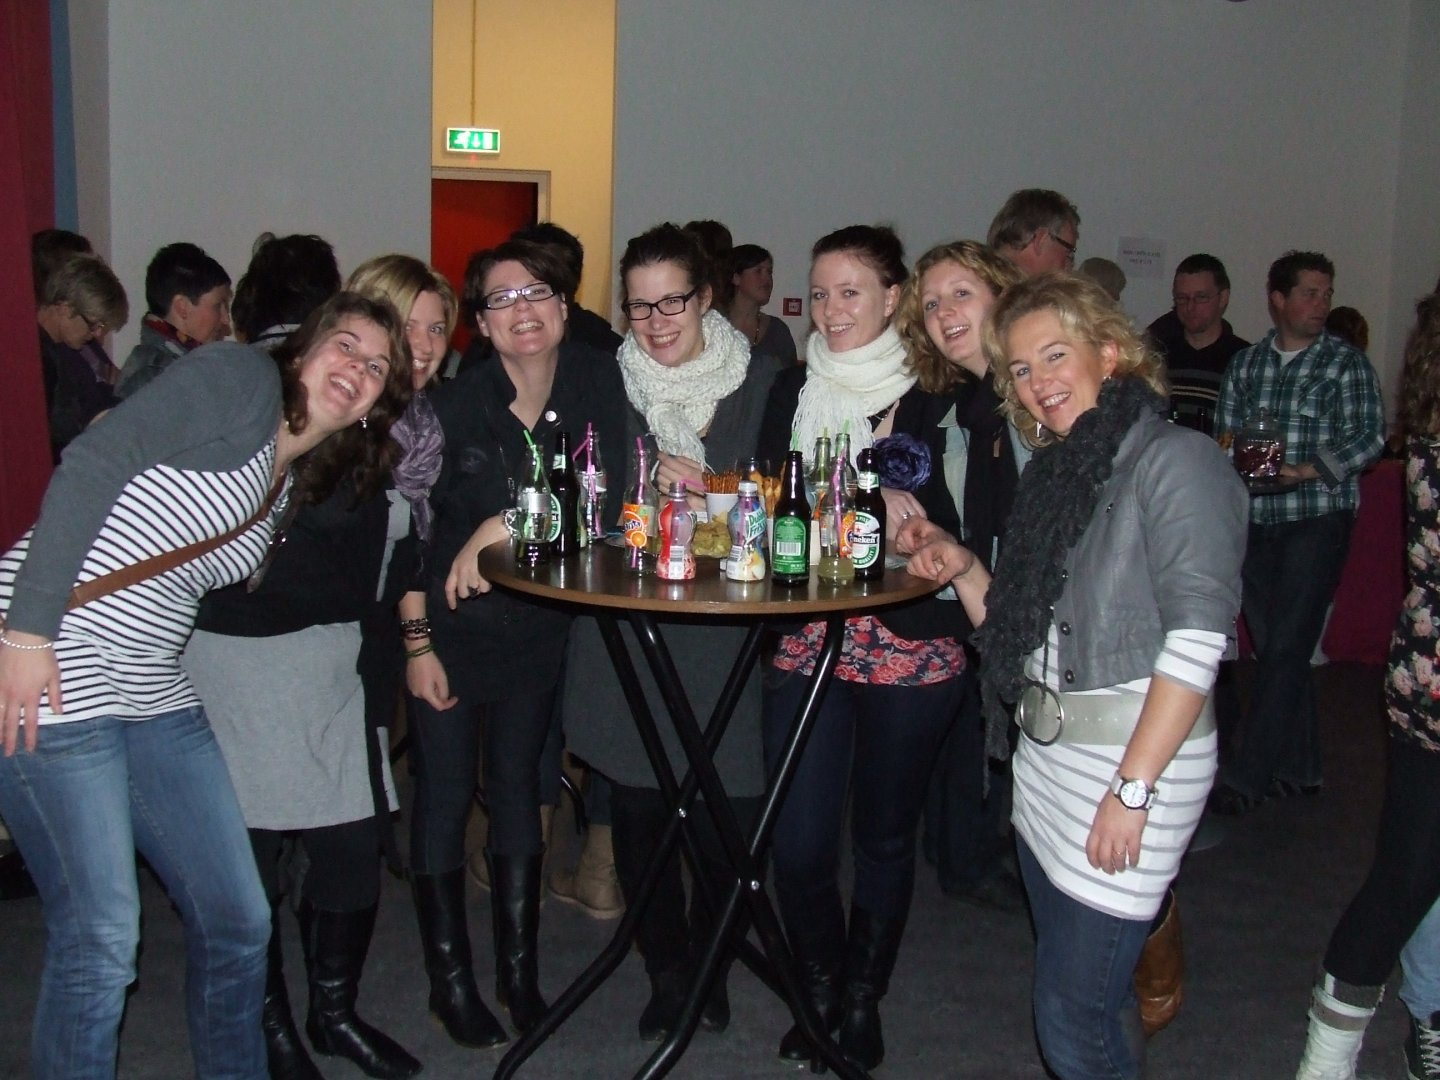 kerstfeest 2010 024